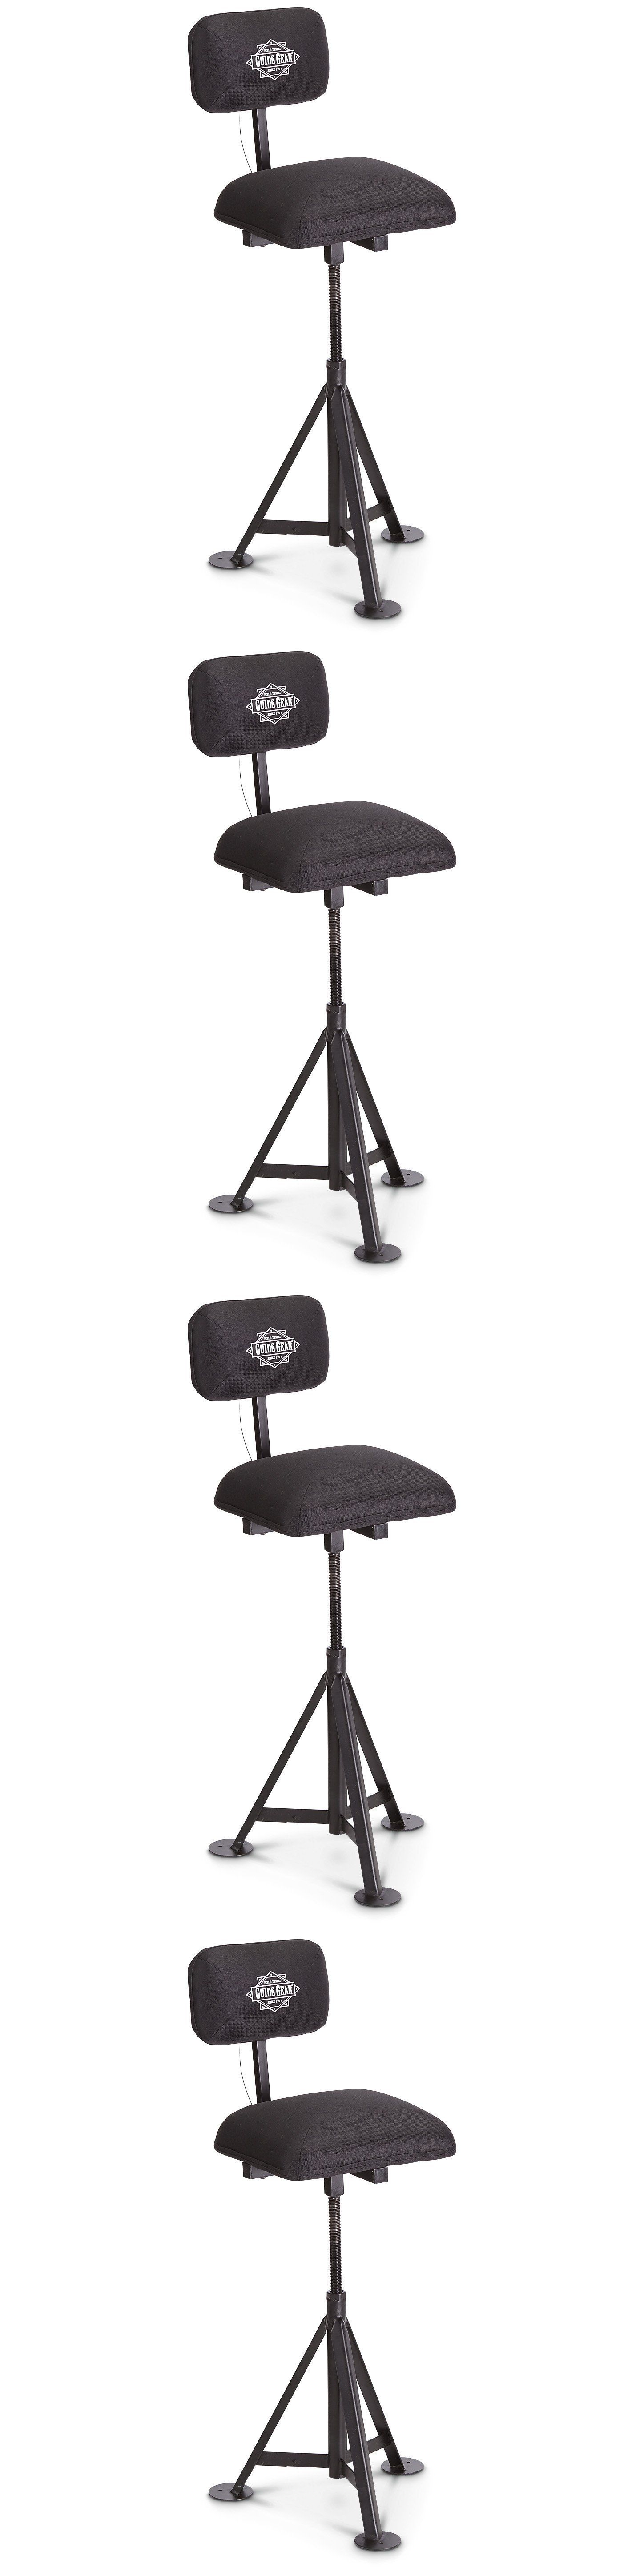 Seats and Chairs 52507 Swivel Blind Stool Hunting Chair Adjustable Backrest Seat C& Duck Hunters  sc 1 st  Pinterest & Seats and Chairs 52507: Swivel Blind Stool Hunting Chair ... islam-shia.org